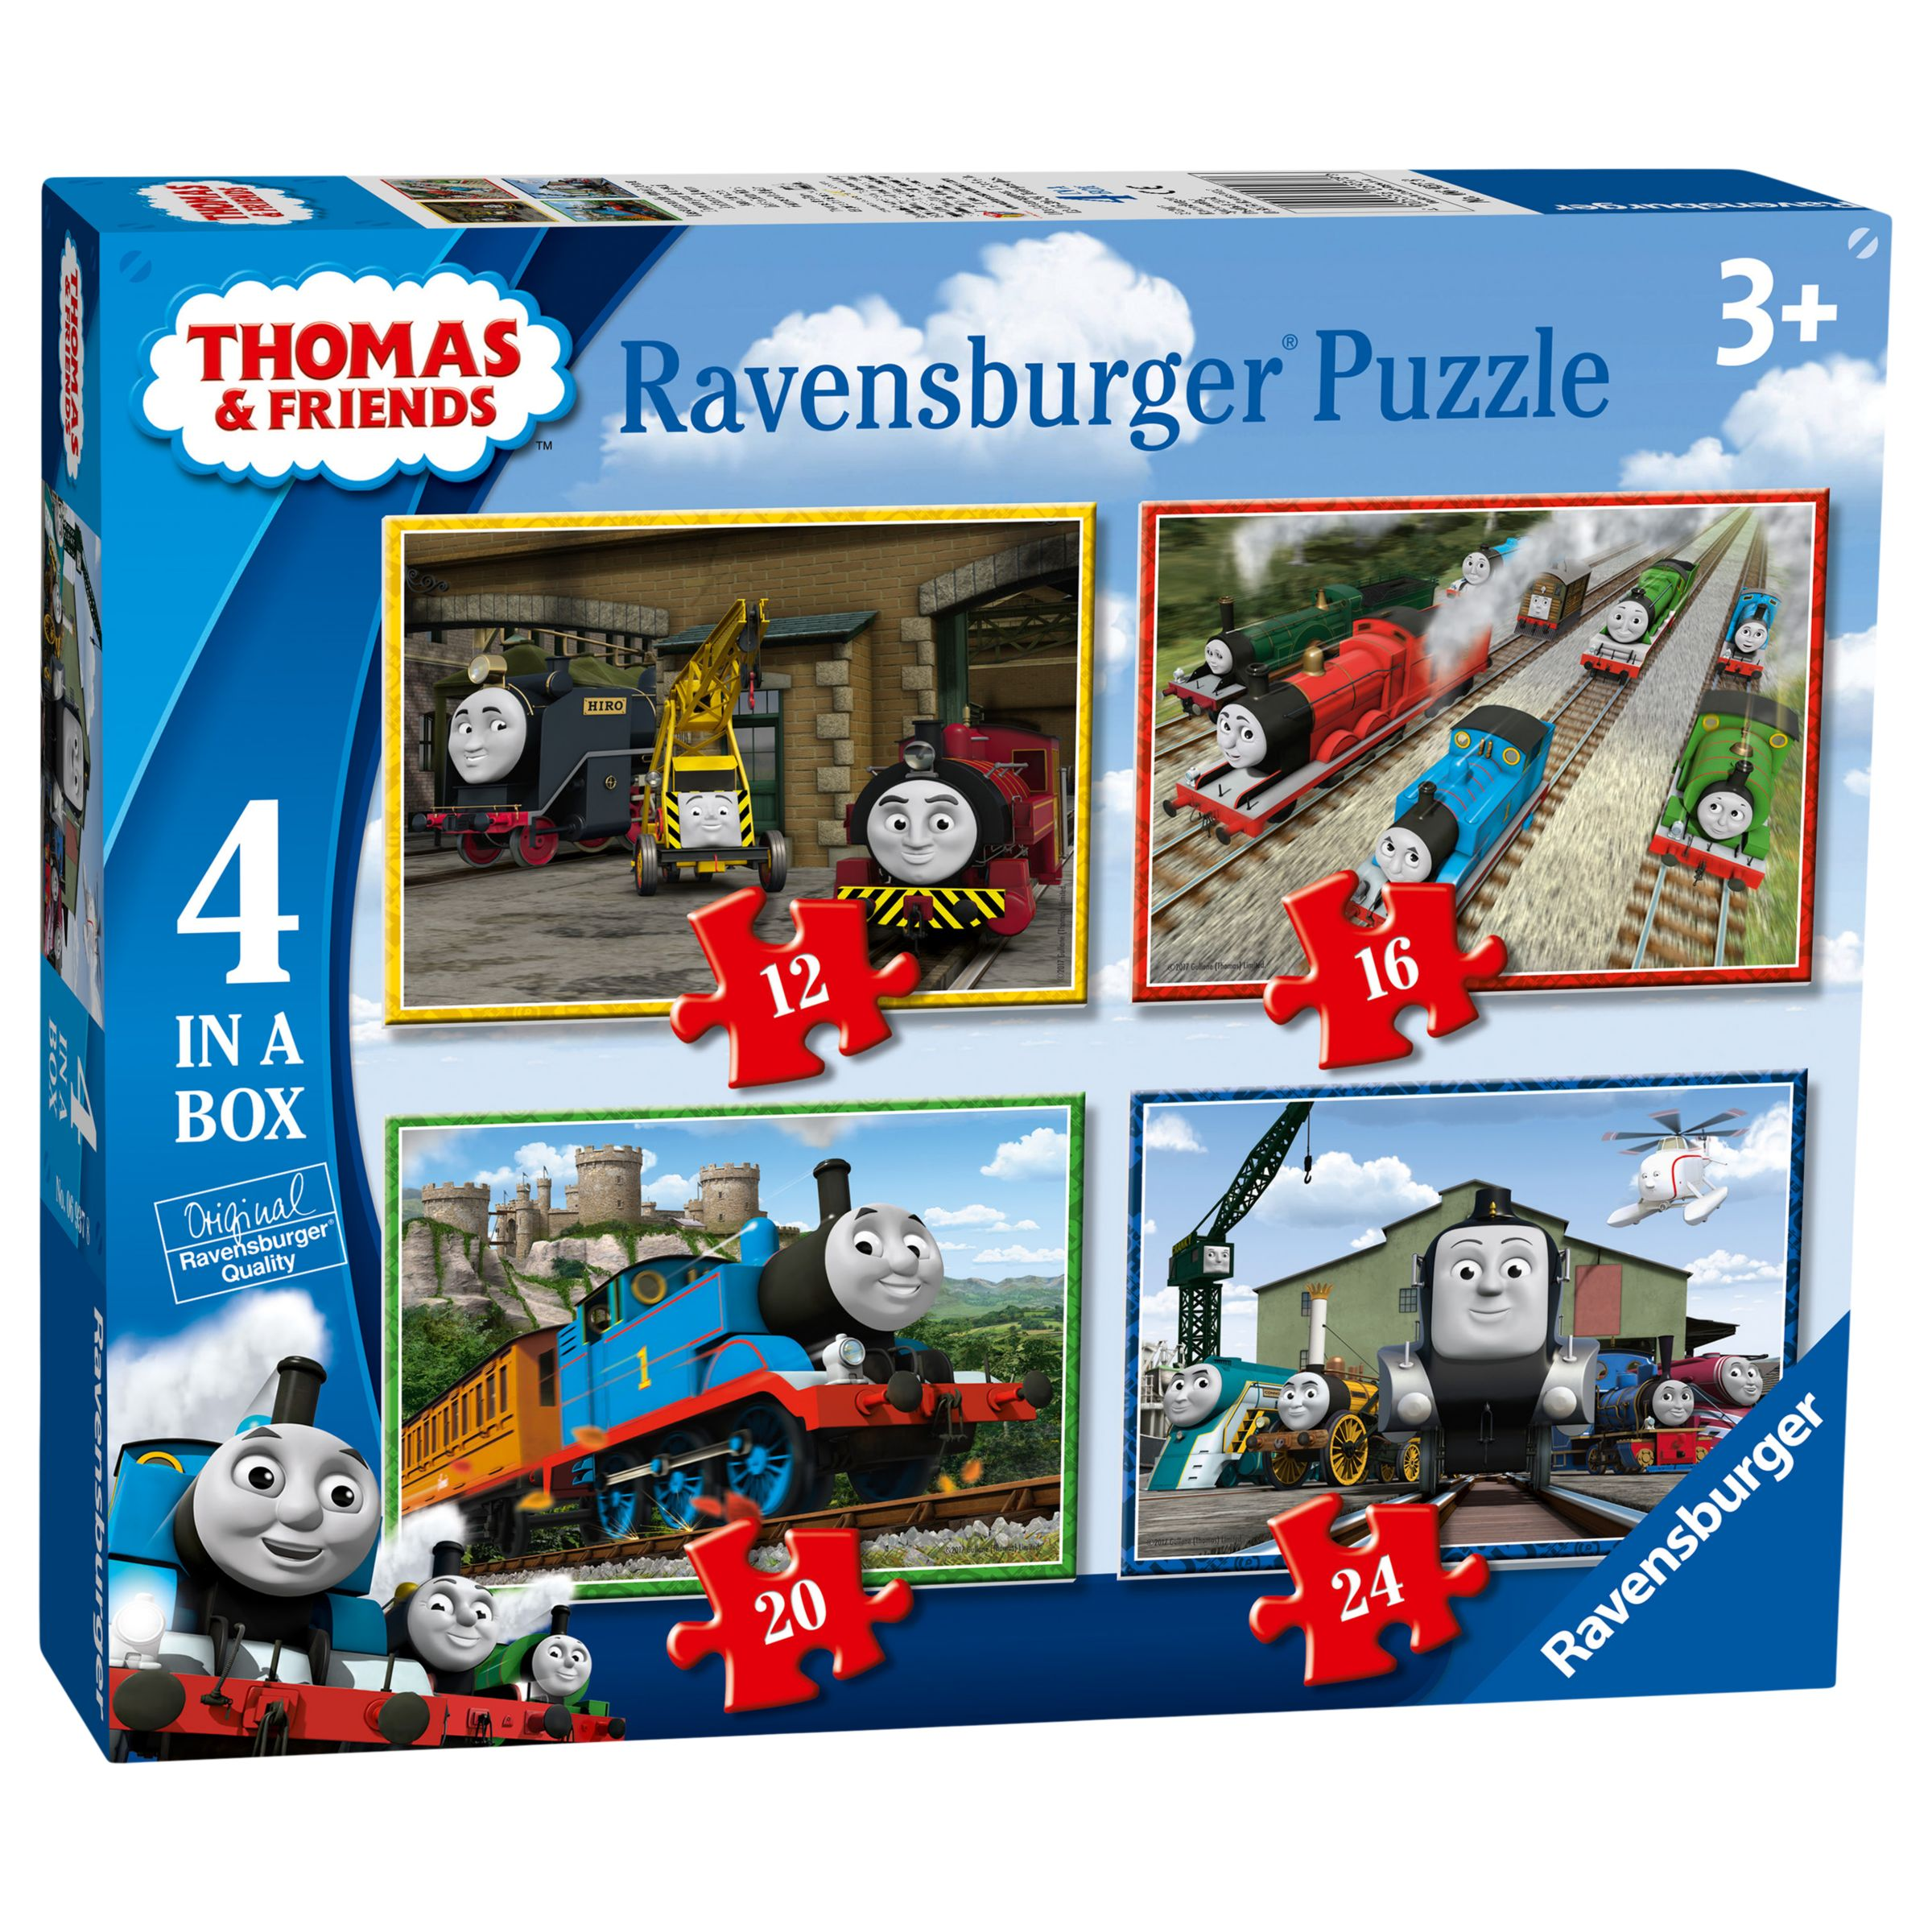 Ravensburger Ravensburger Thomas & Friends Jigsaw Puzzle, Pack of 4